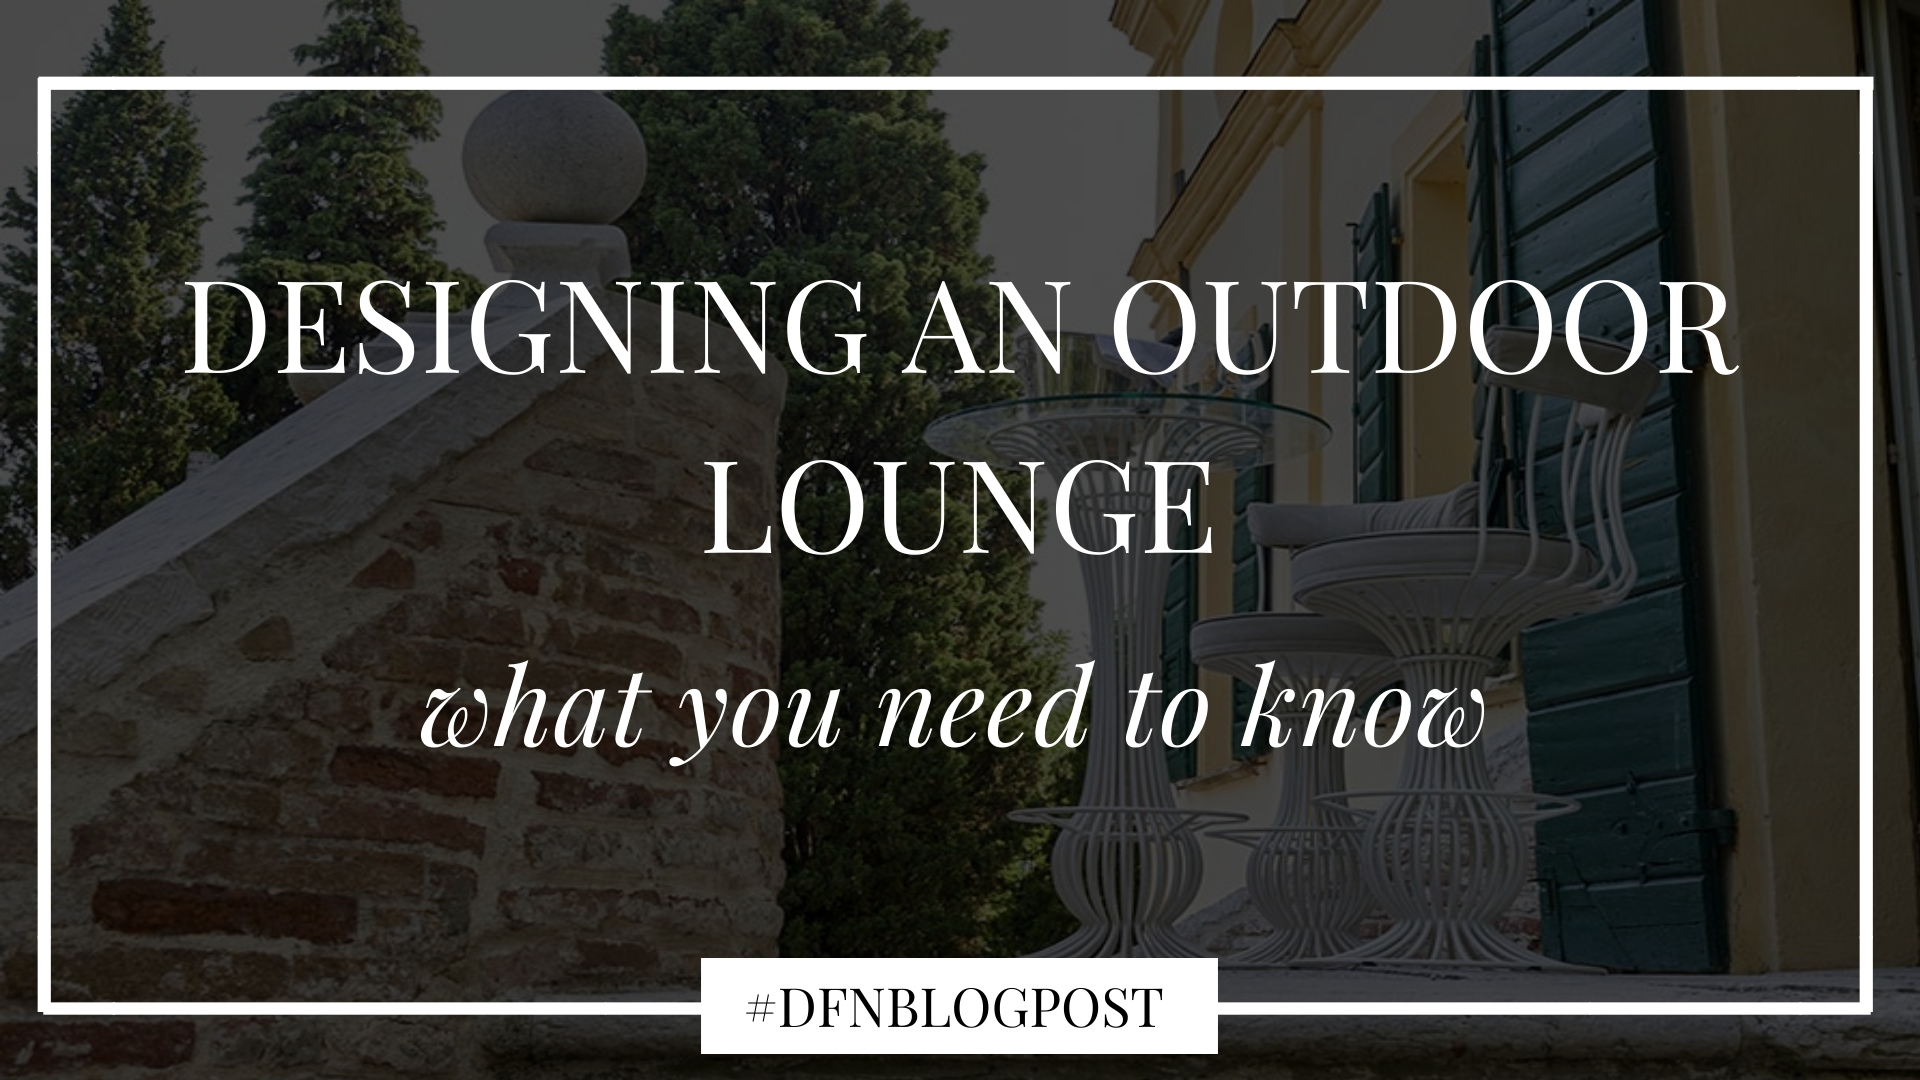 Designing an outdoor lounge with DFN: what you need to know 1